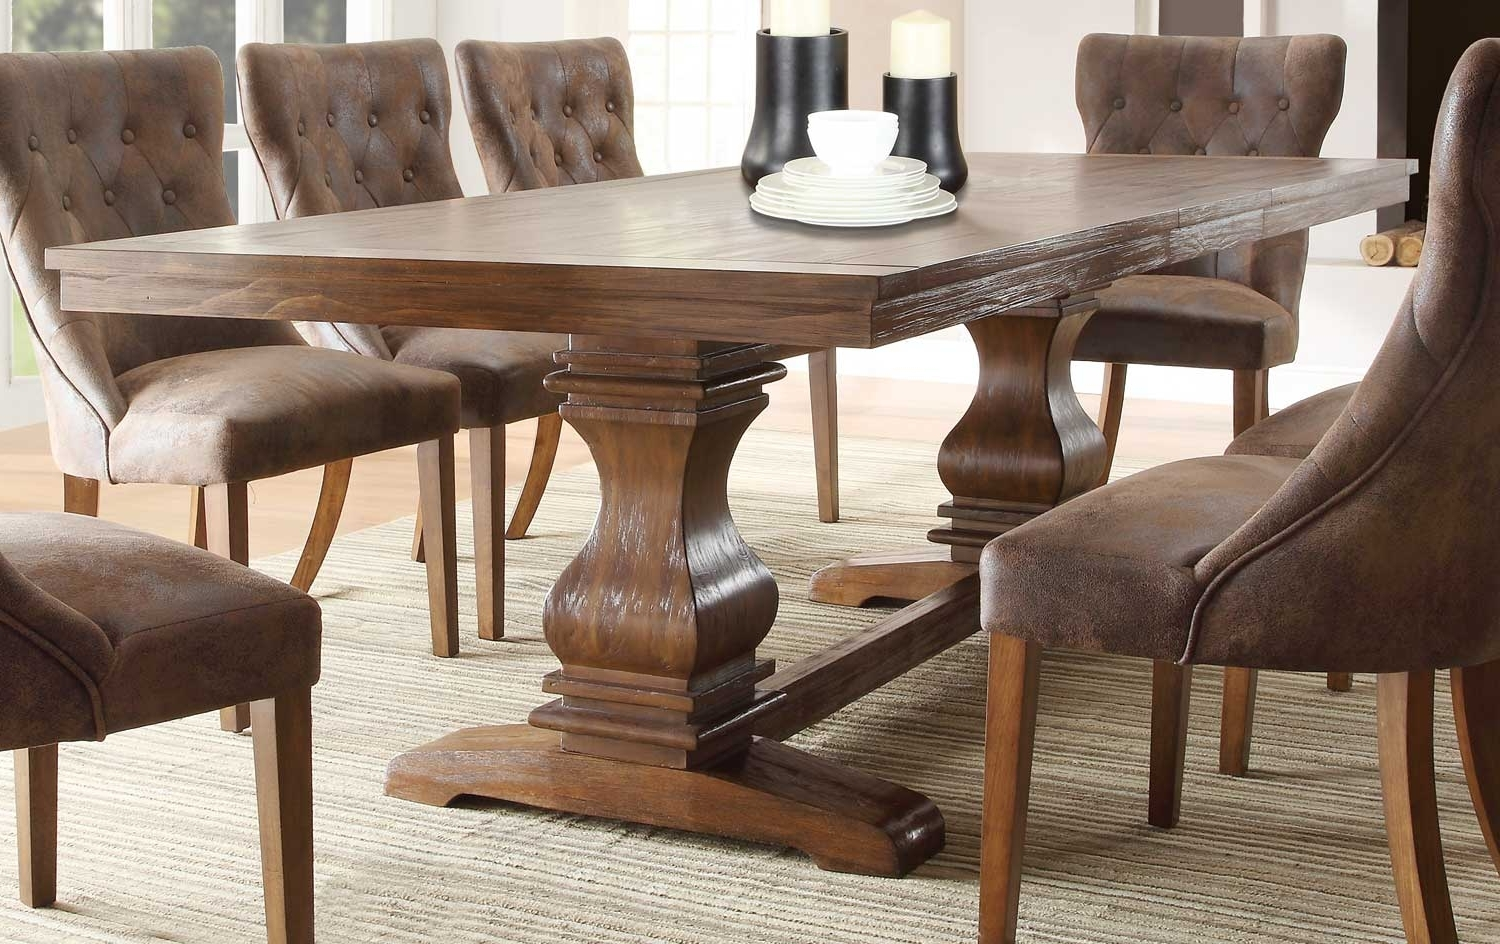 Oak Dining Suites With Regard To Latest Oak Dining Table Cheap Cross Legged Oak Dining Table – Attractive (View 17 of 25)